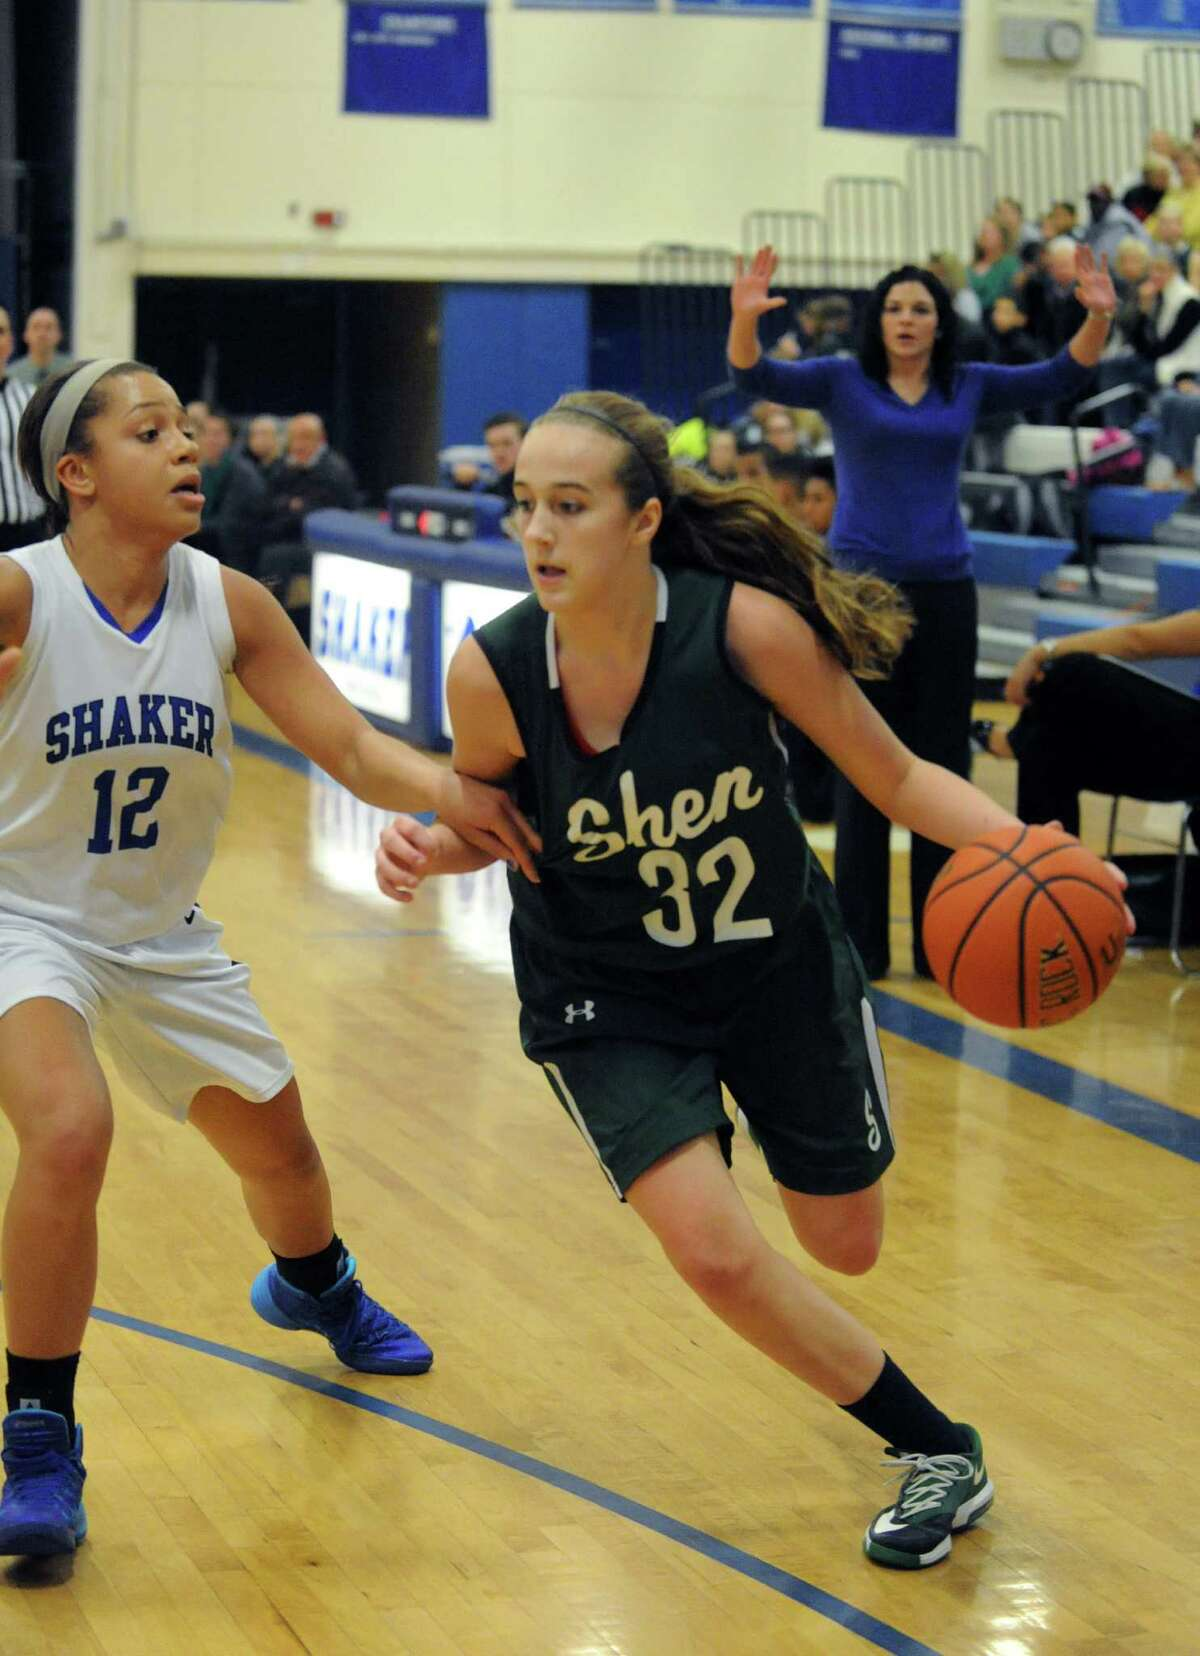 Shen's Carly Boland brings the ball up court guarded by Shaker's Rowland Merrick during their girl's high school basketball game on Tuesday Jan. 14, 2014 in Colonie, N.Y. (Michael P. Farrell/Times Union)